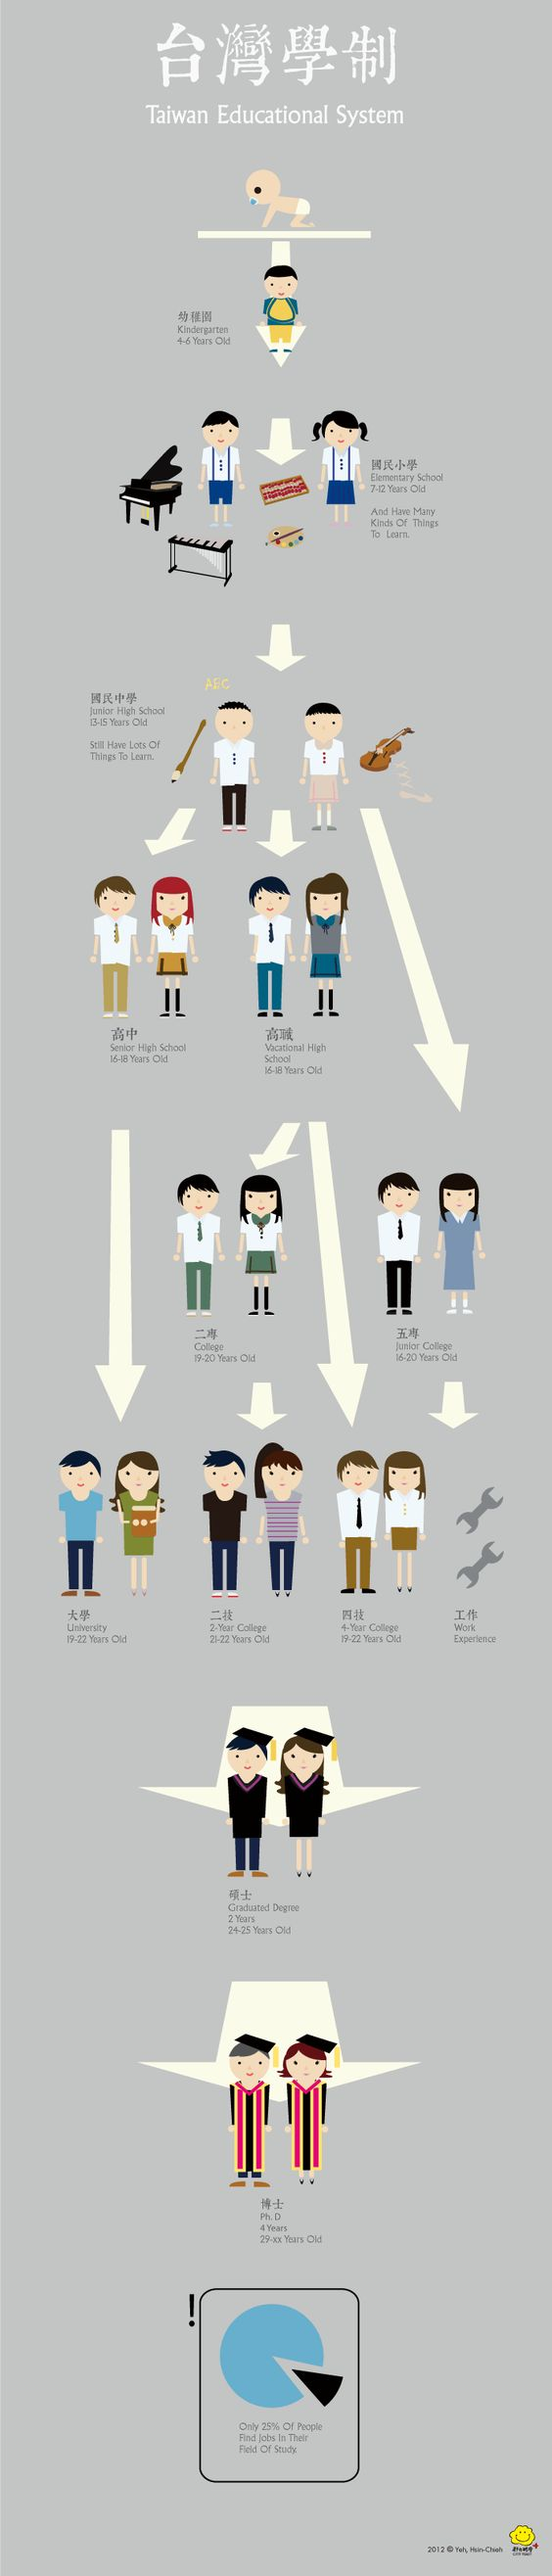 How can I take care of myself in Taiwan, in terms of money?